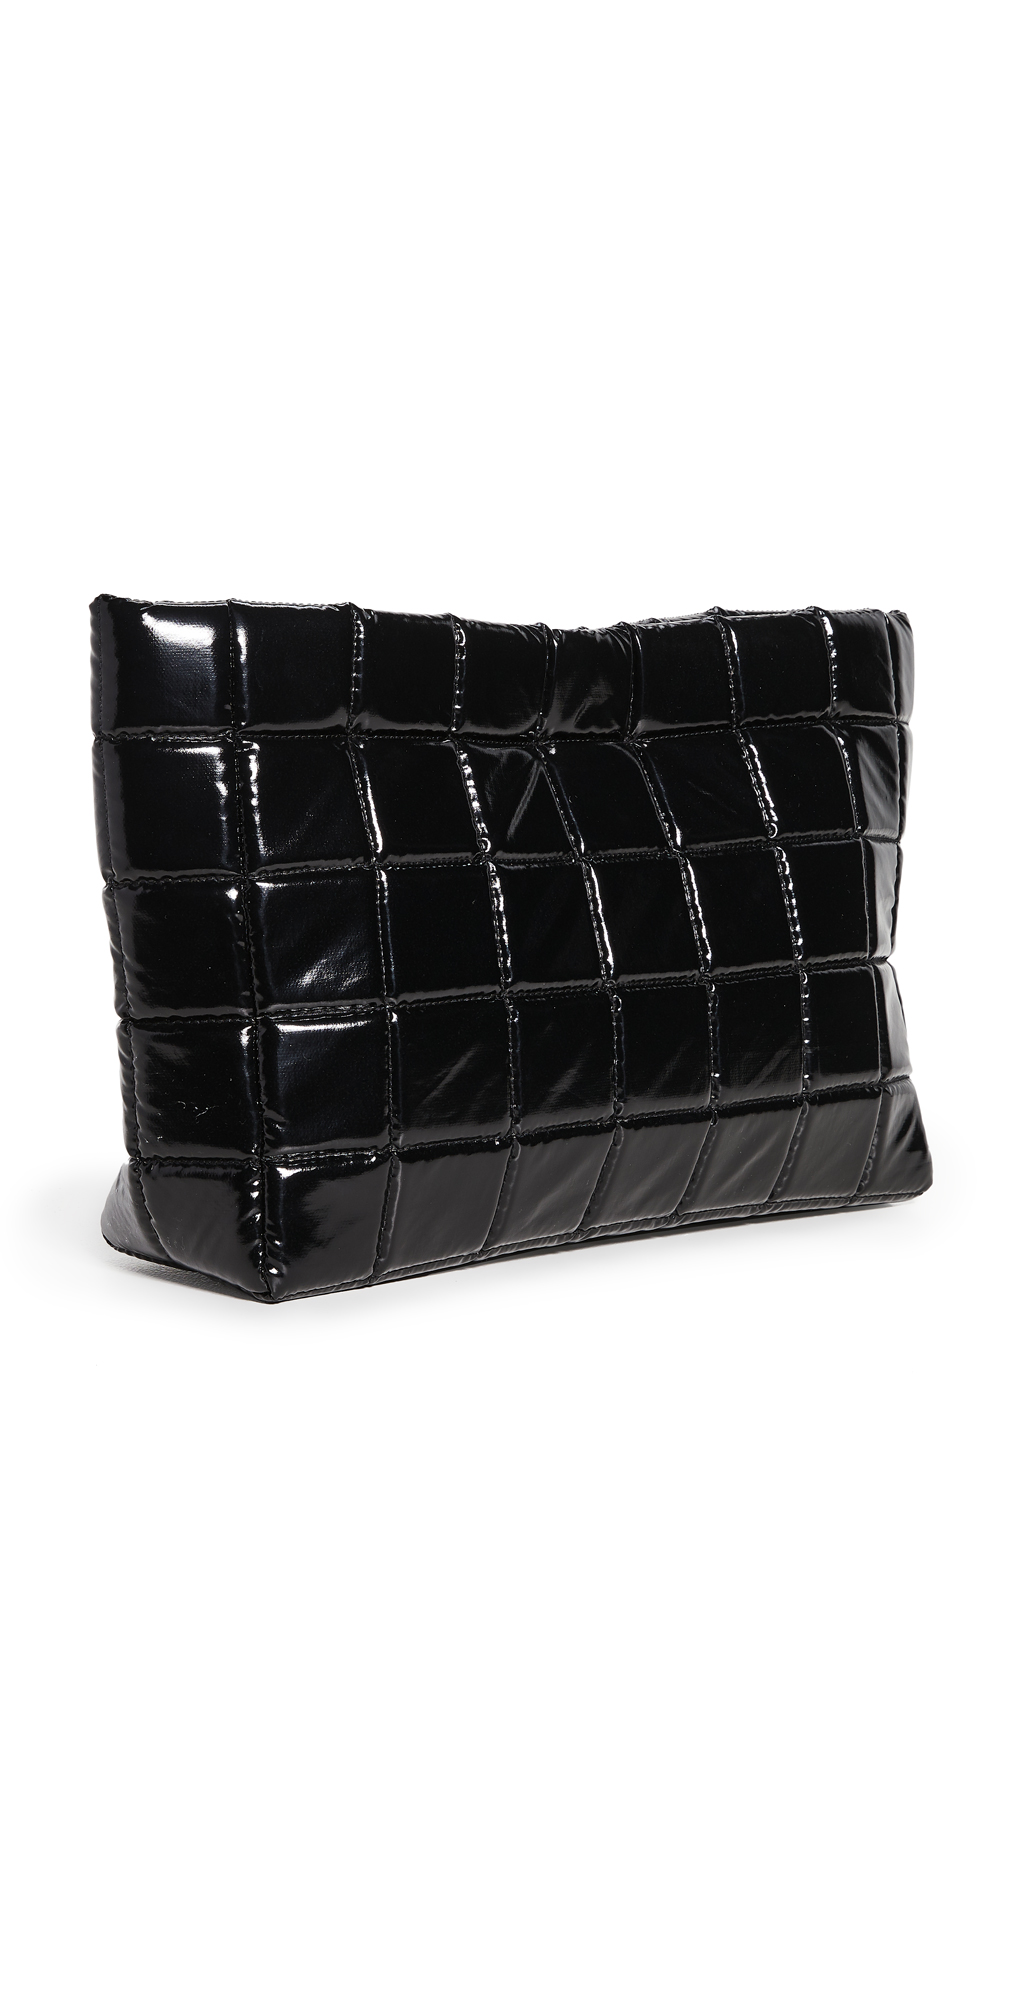 A.W.A.K.E MODE Large Quilted Bag